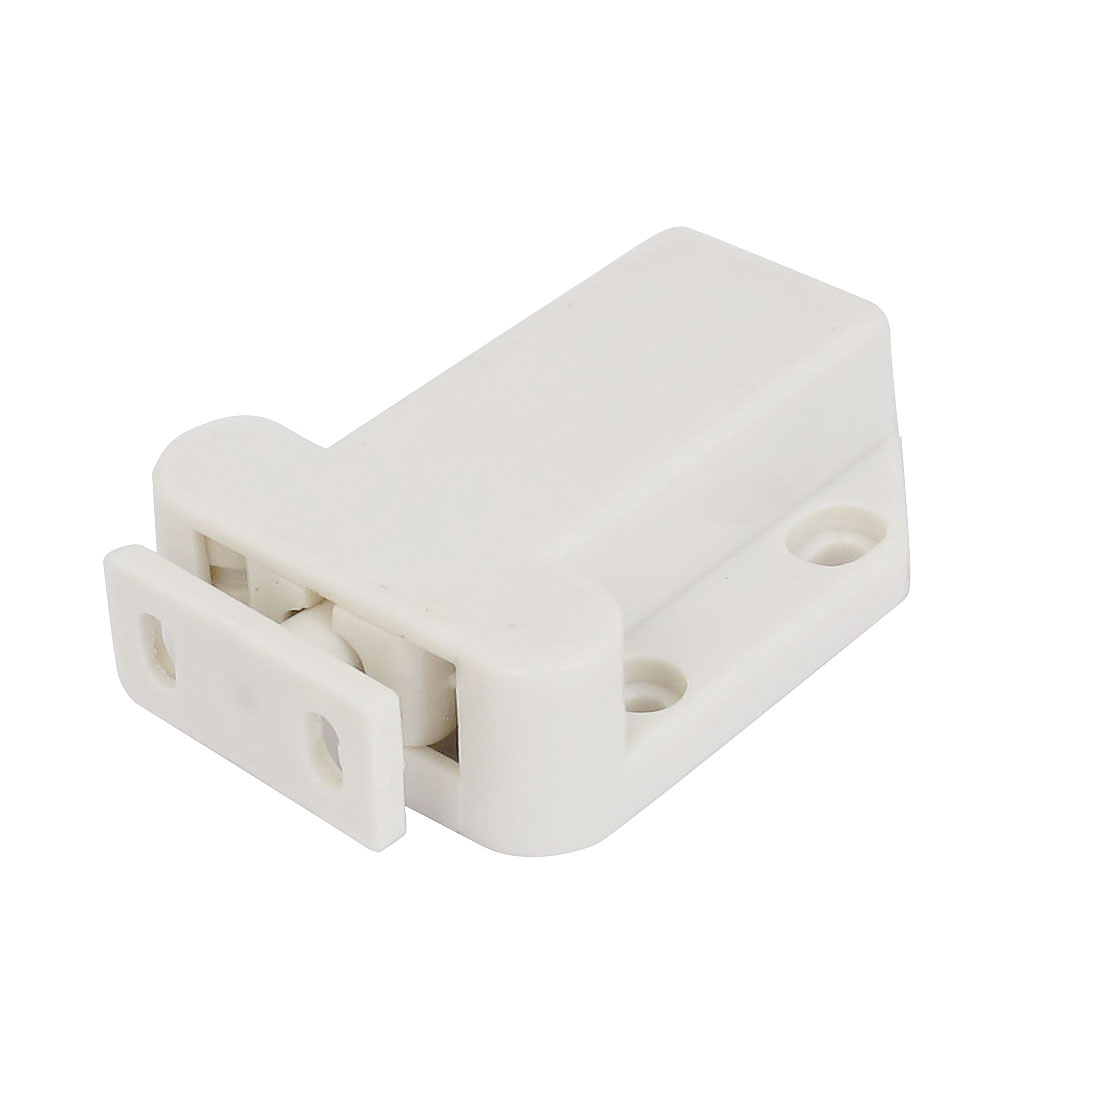 Housewares Cupboard Door Catch Touch Latch White 3mm Mounting Hole